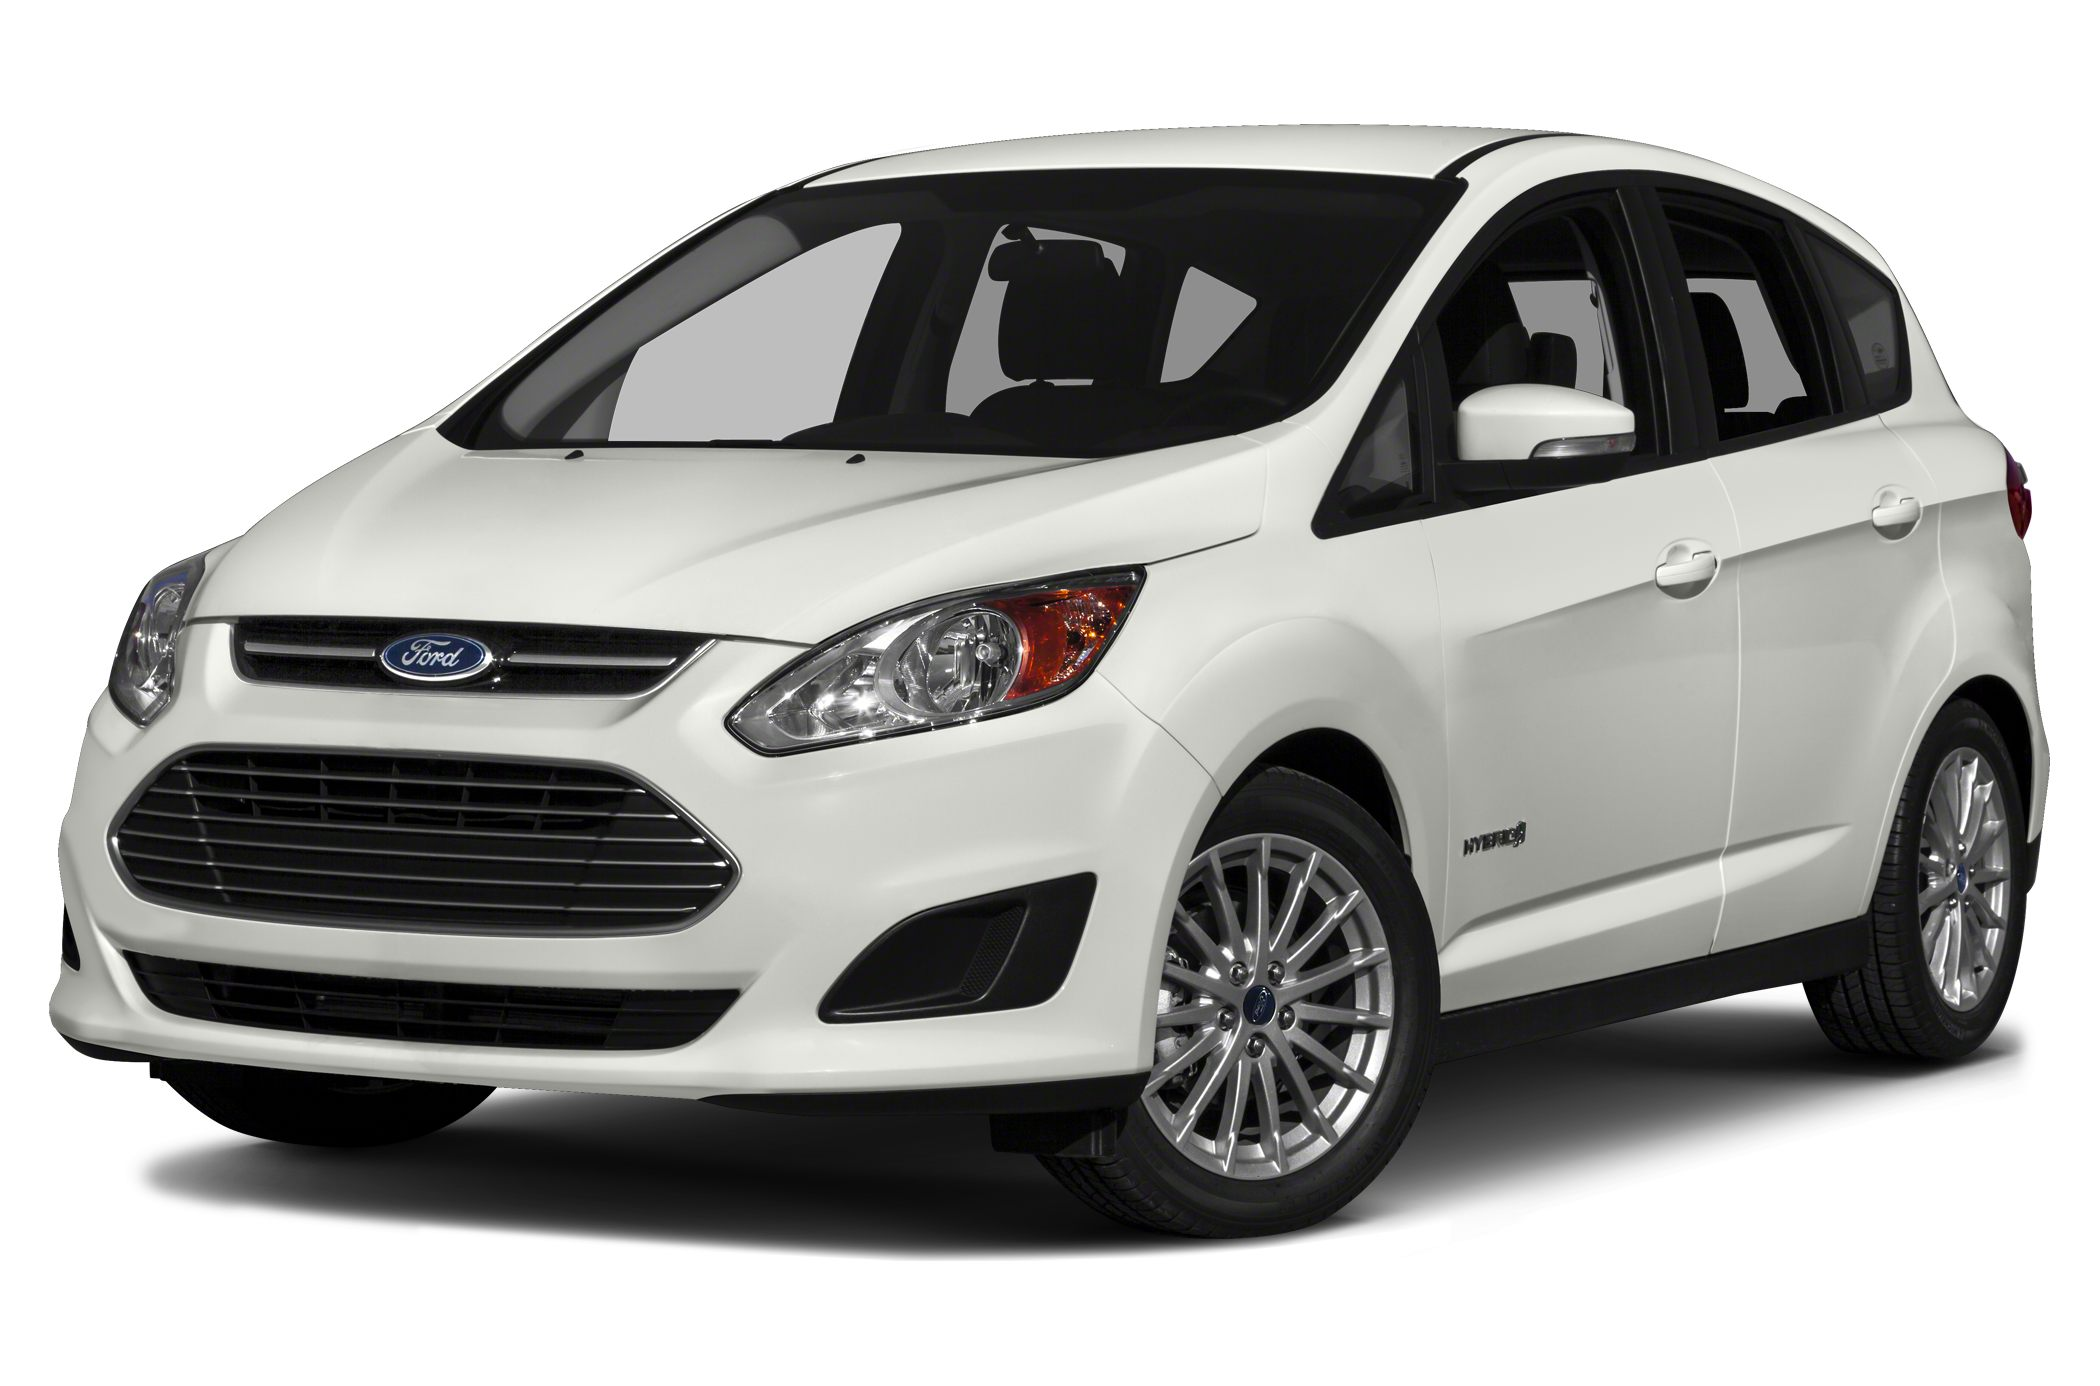 2015 Ford C-Max Hybrid SE Outstanding design defines the 2015 Ford C-Max Hybrid Youll appreciate